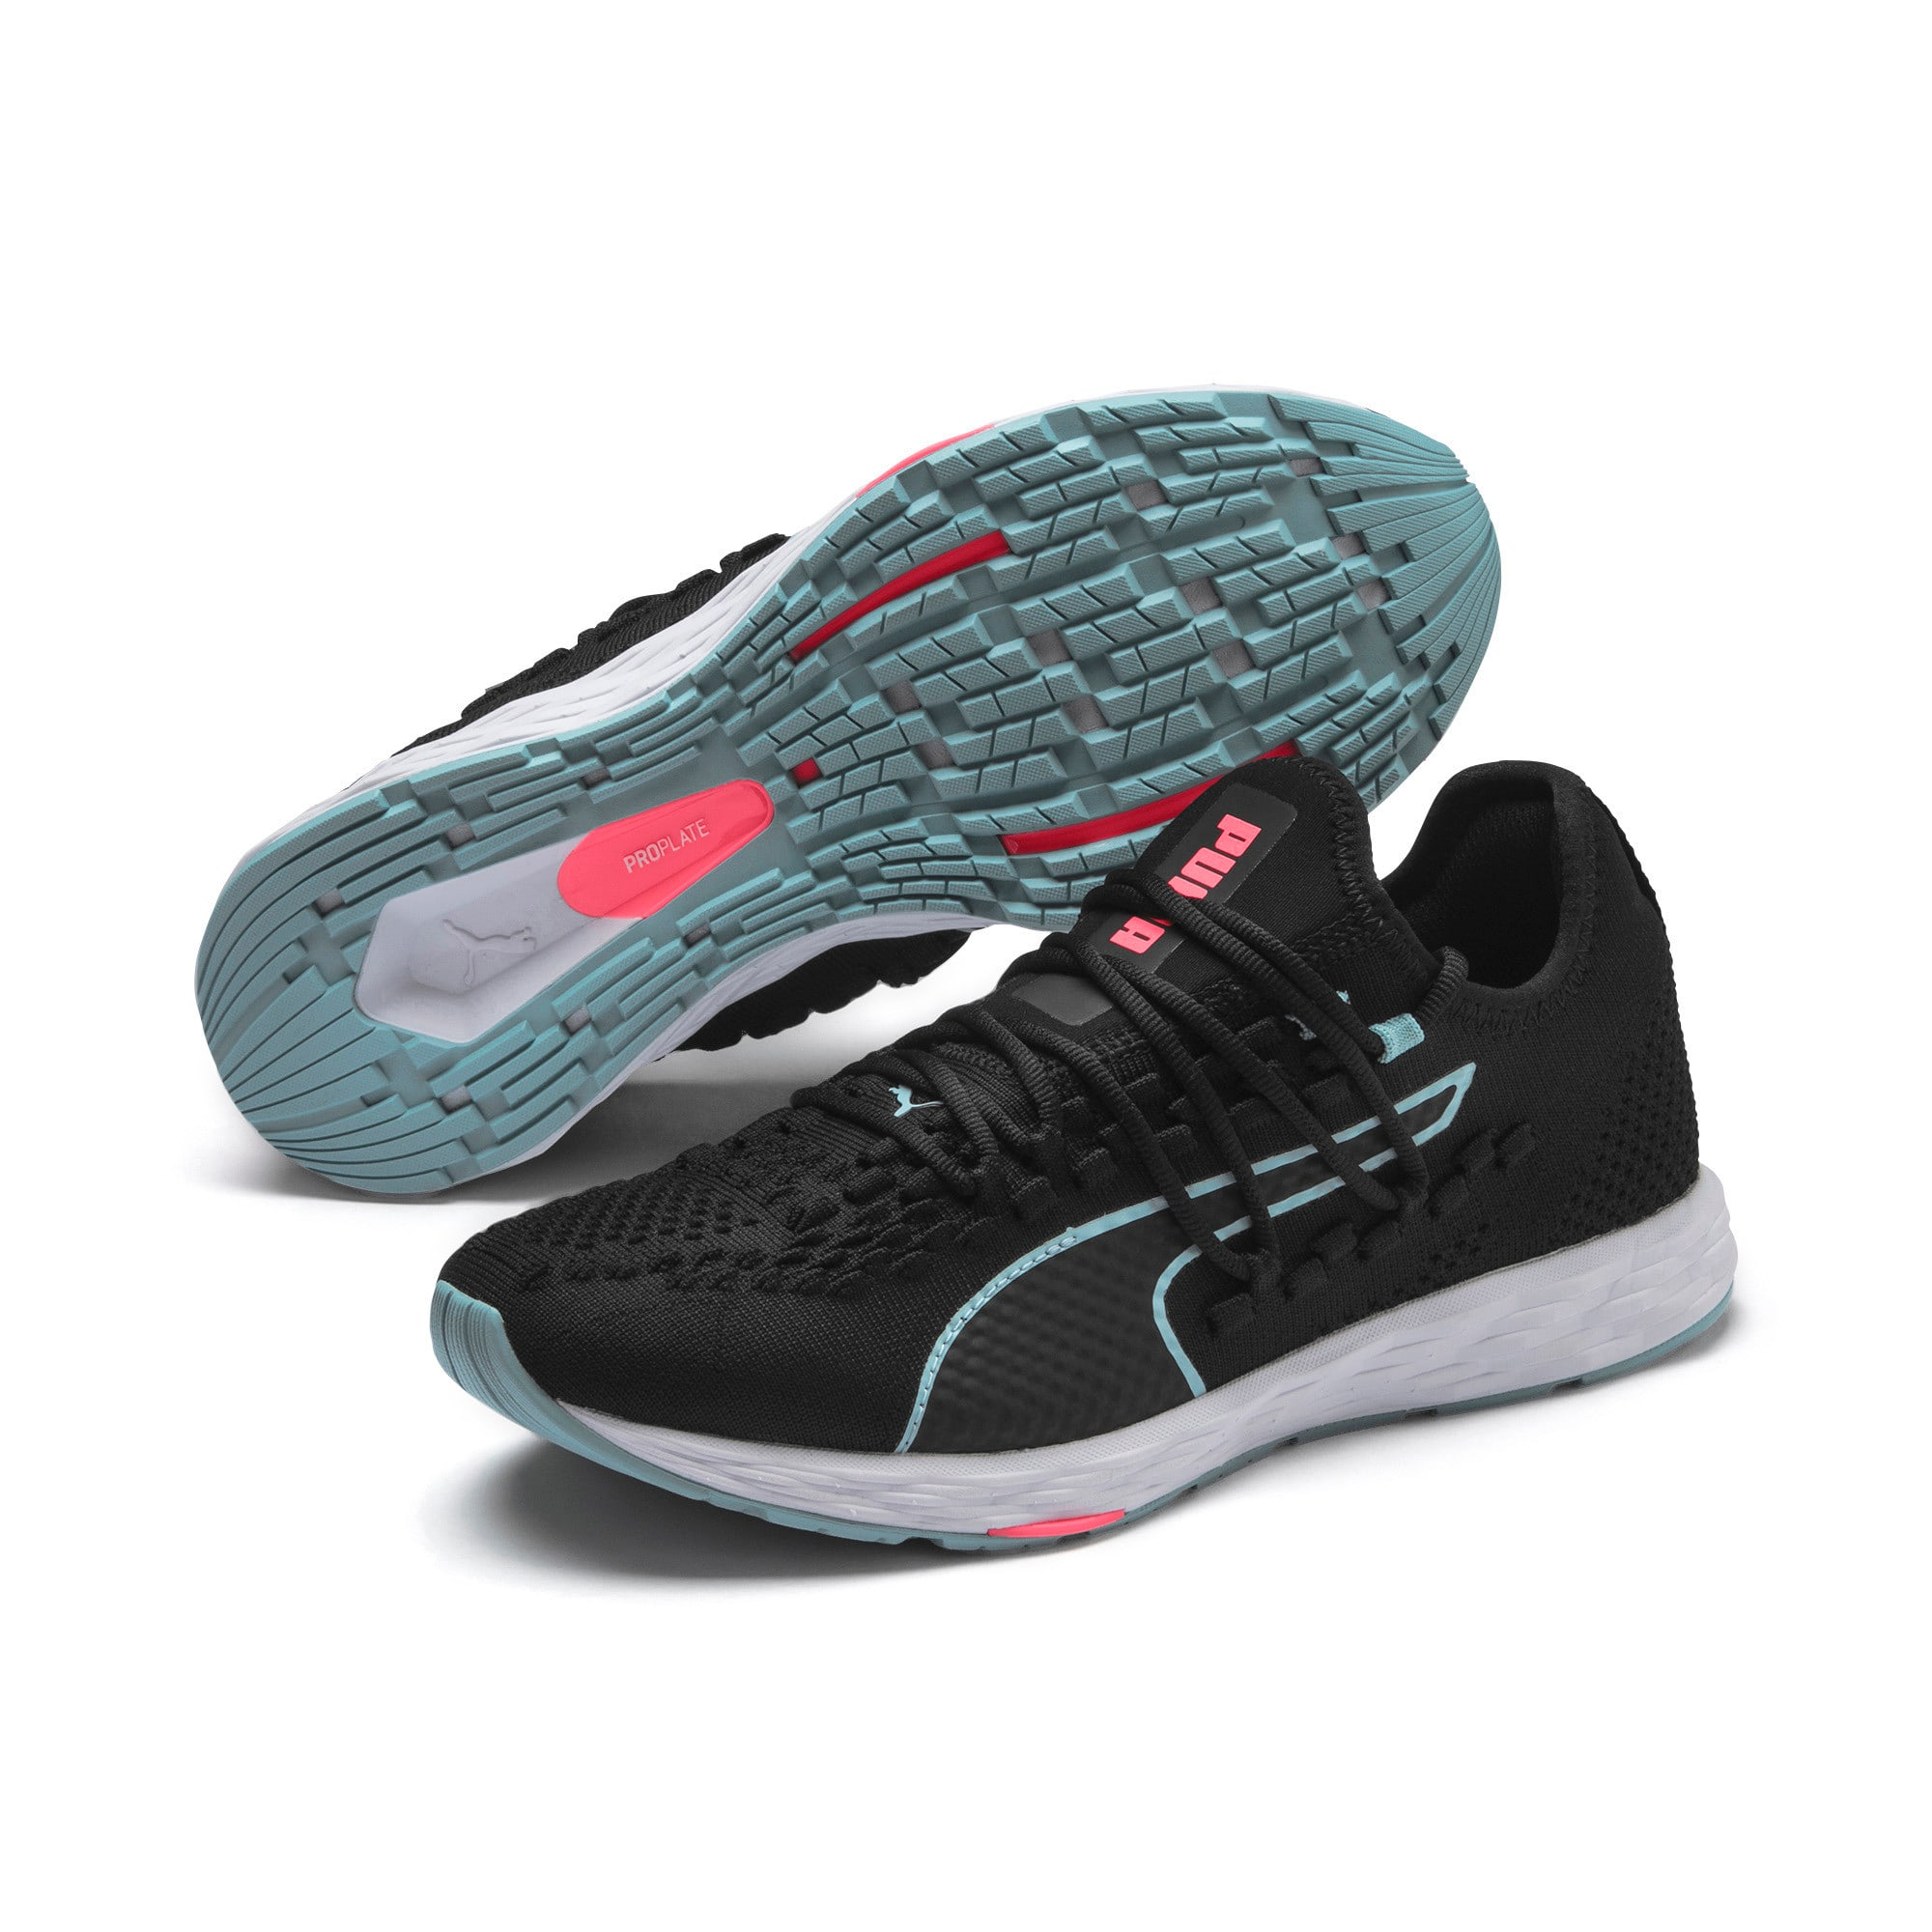 Thumbnail 3 of SPEED RACER Women's Running Shoes, Black-Milky Blue-Pink Alert, medium